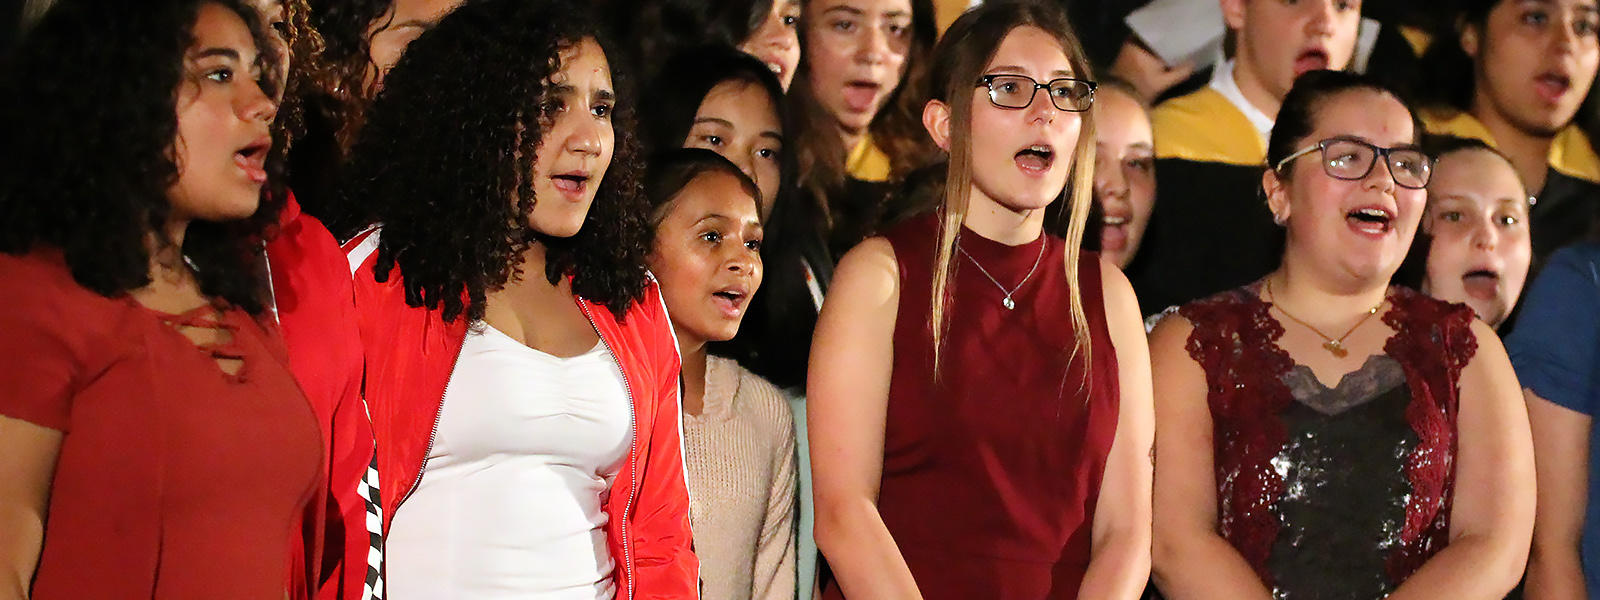 Members of the Elm Choir perform at Kaleidoscope 2018.